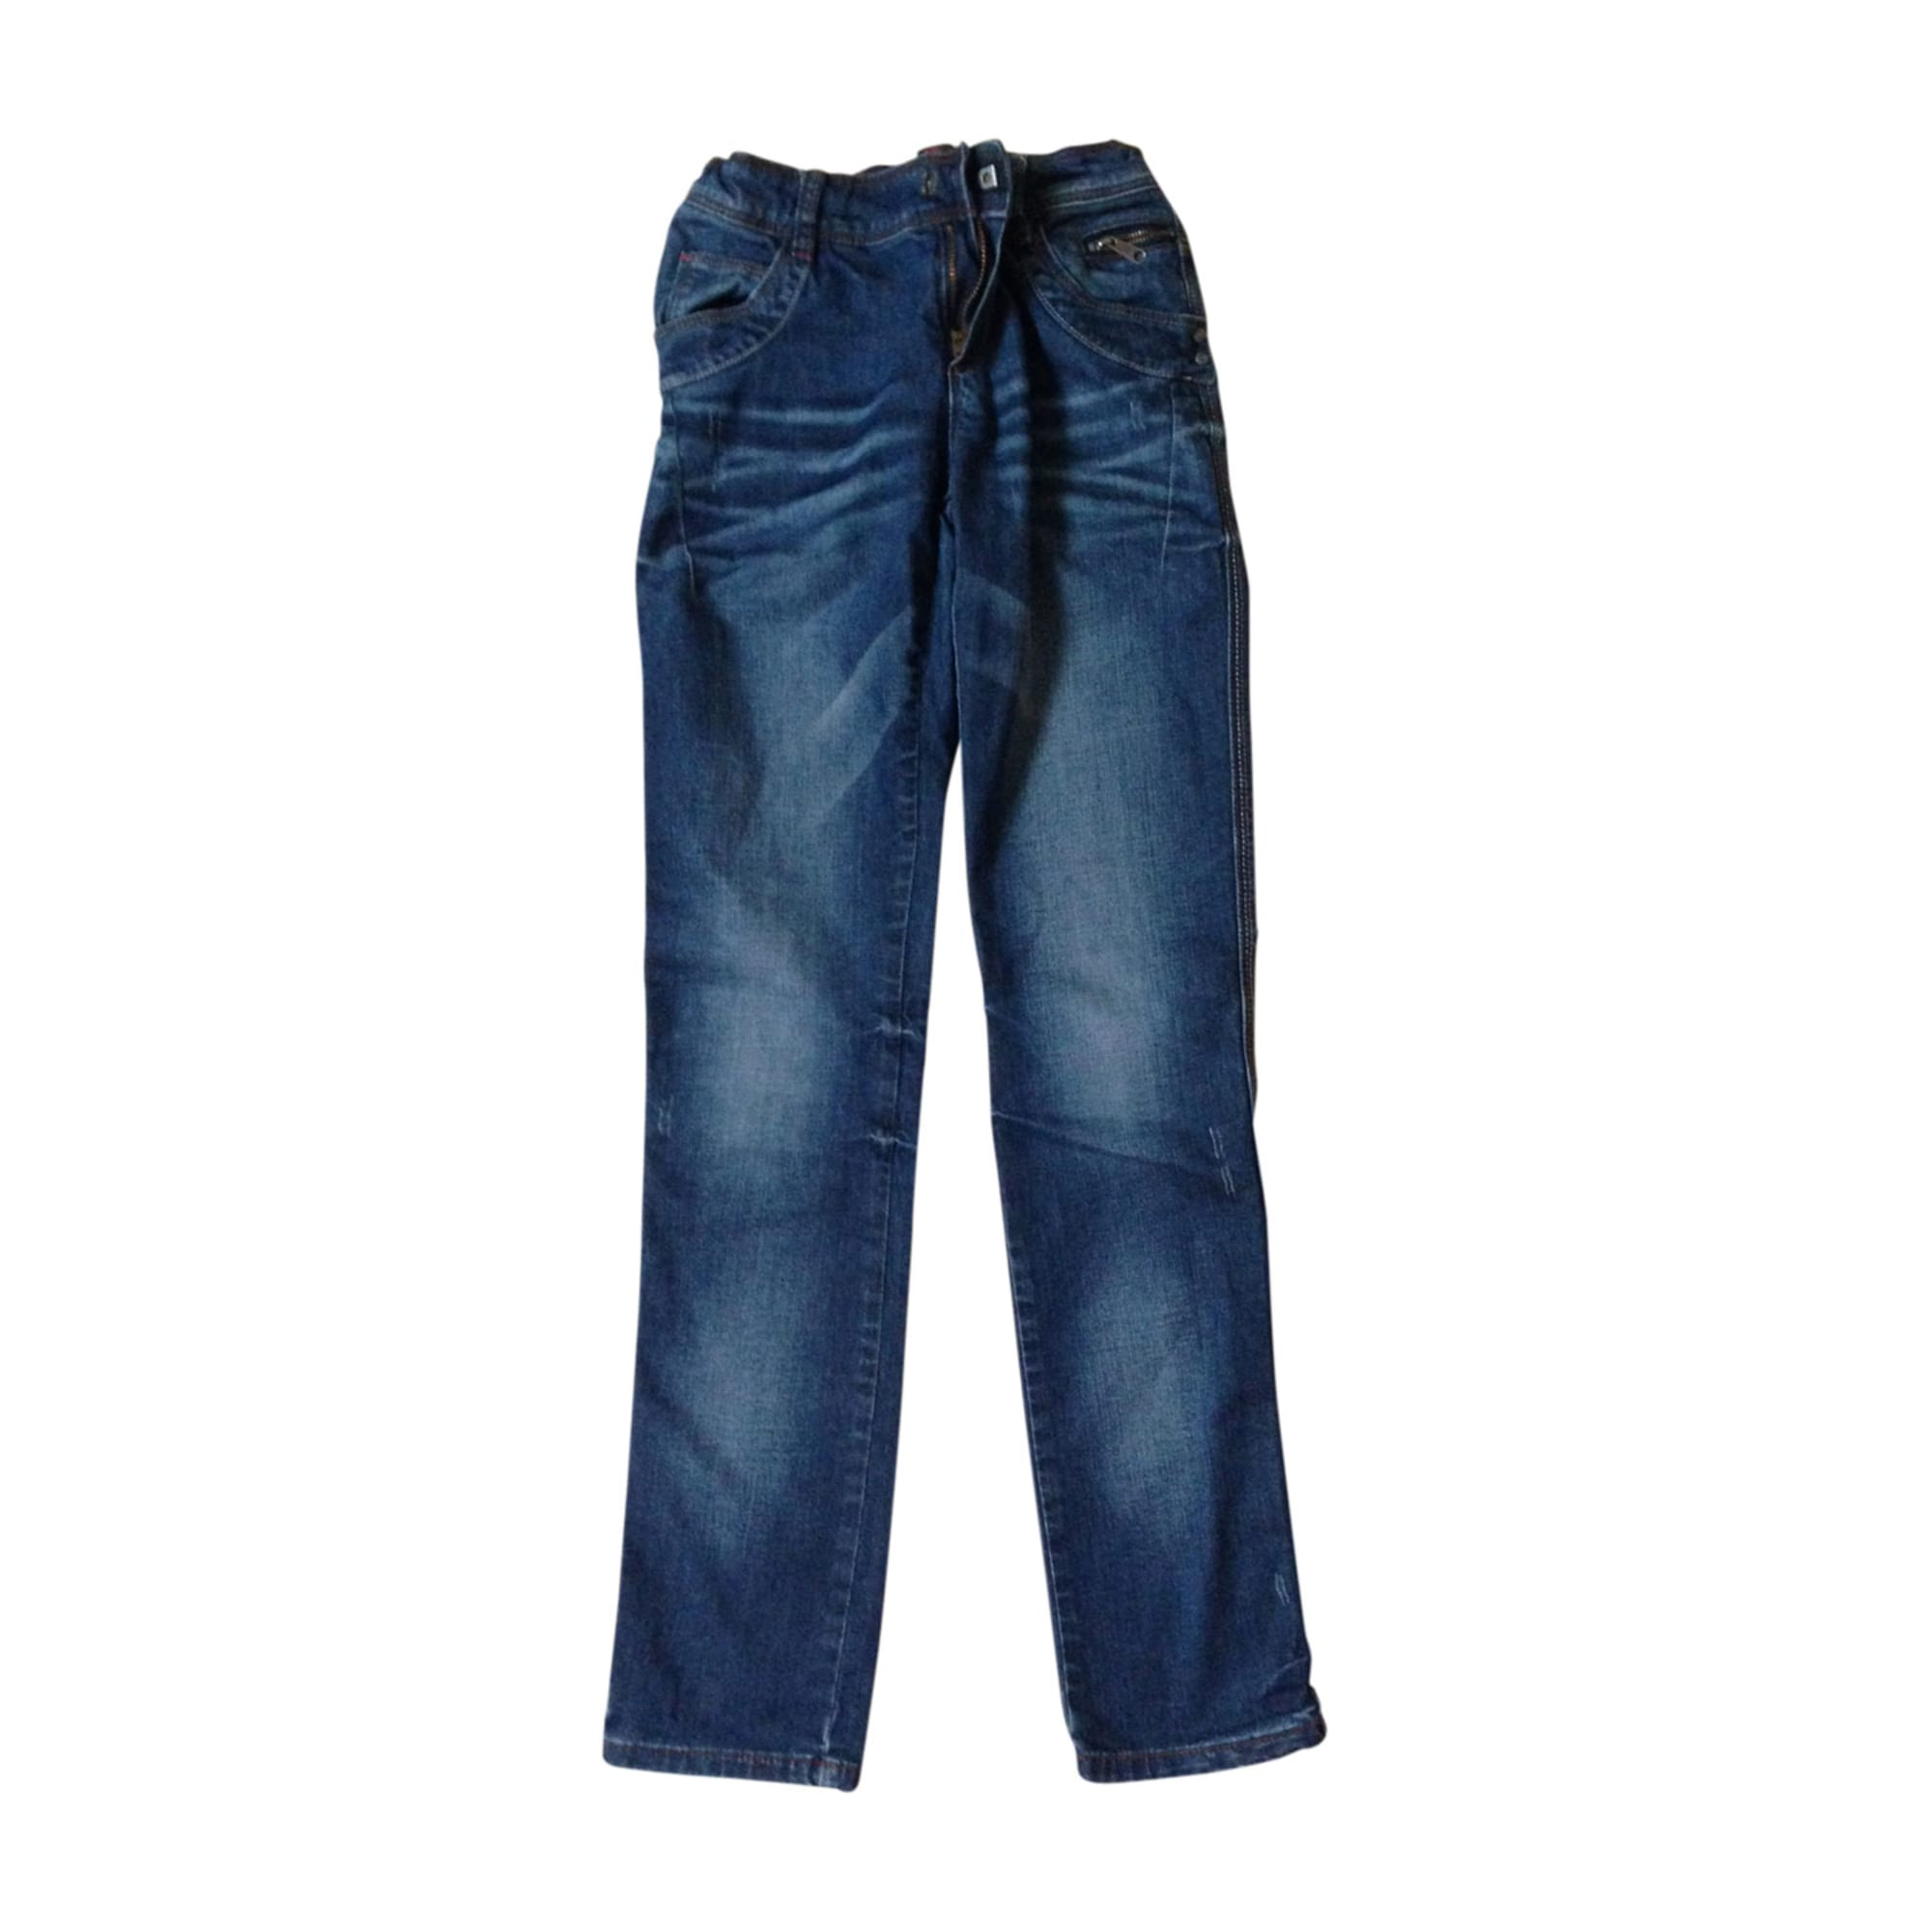 Skinny Jeans JEAN BOURGET Blue, navy, turquoise